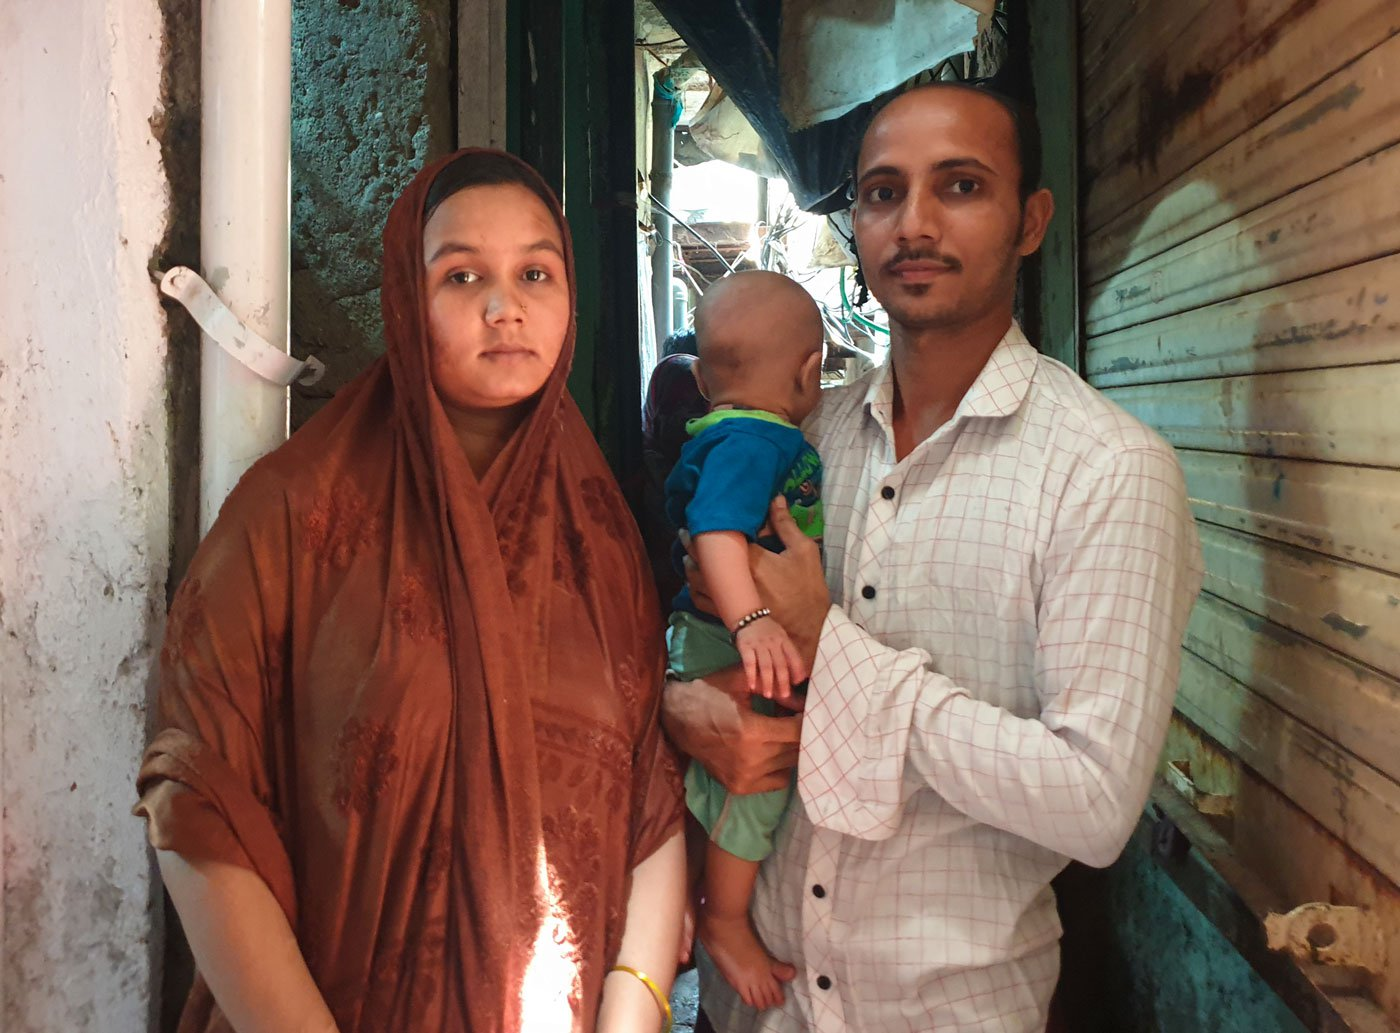 Mohammed Shamim, Gausiya and their son: 'If we get one seat, we'll board and then pay whatever fine or penalty is charged'